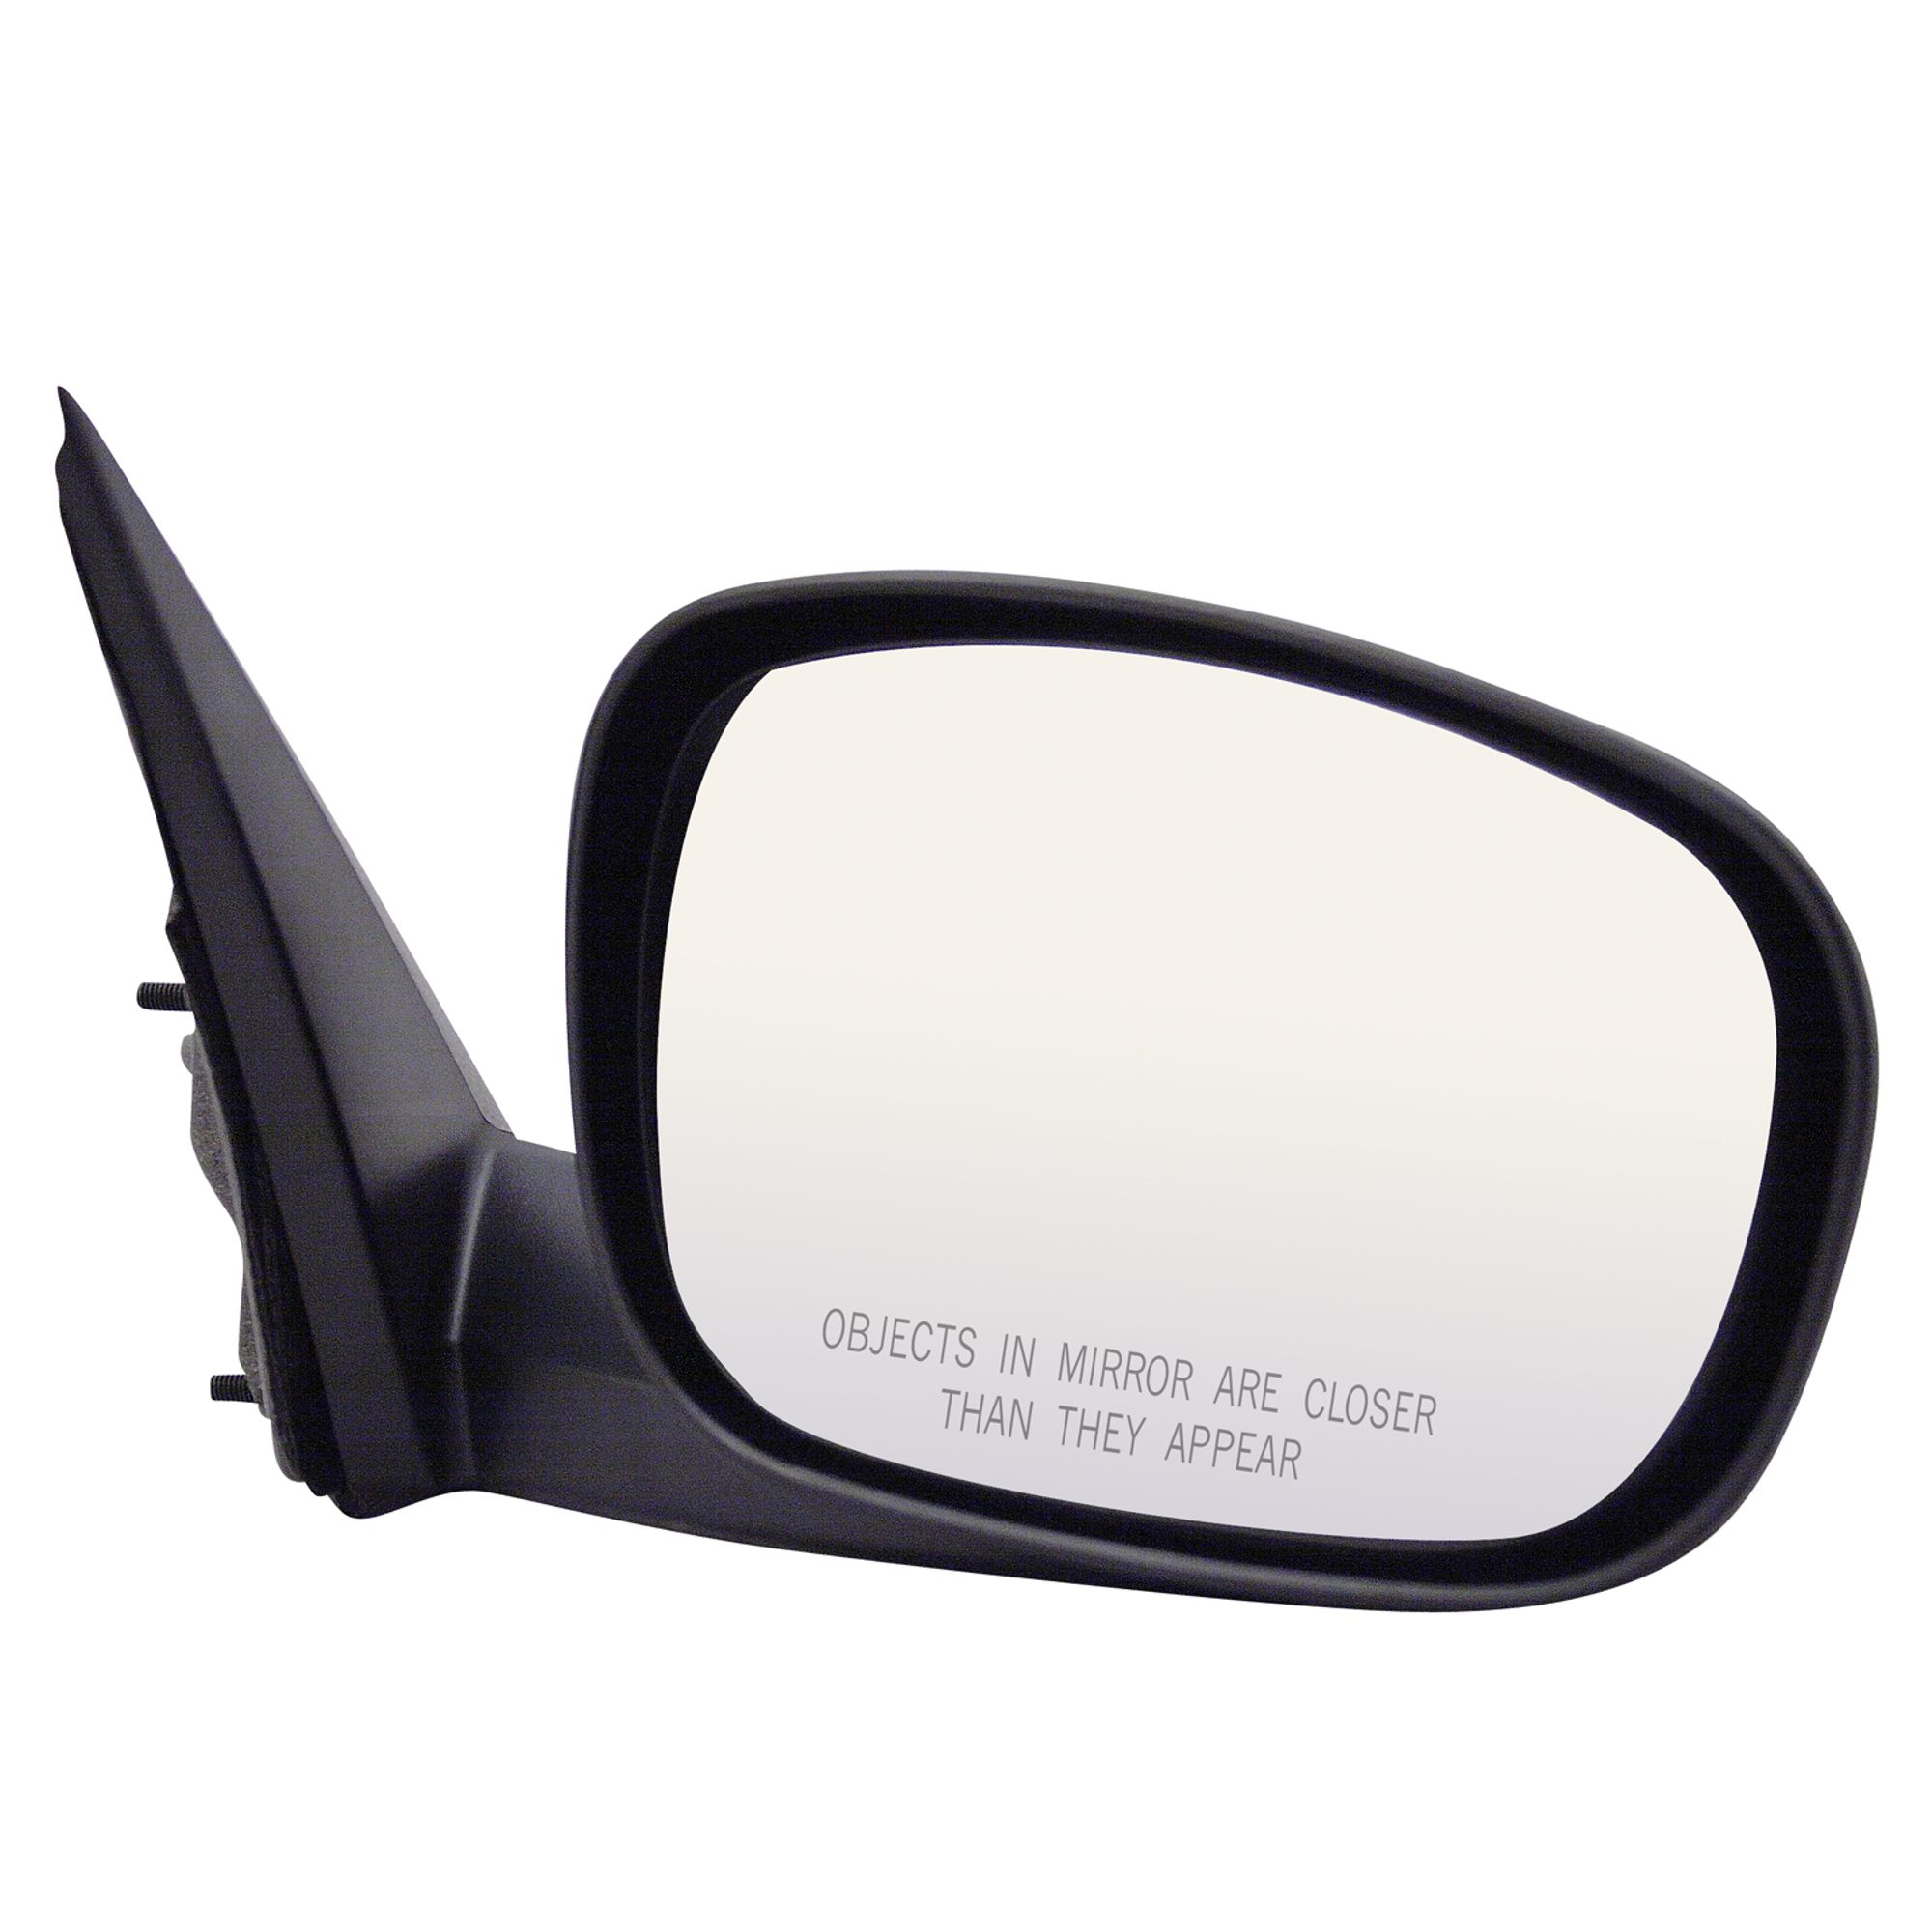 Drivers Manual Side View Mirror Textured Replacement for Nissan Van 96302-1PA6E AUTOANDART.COM